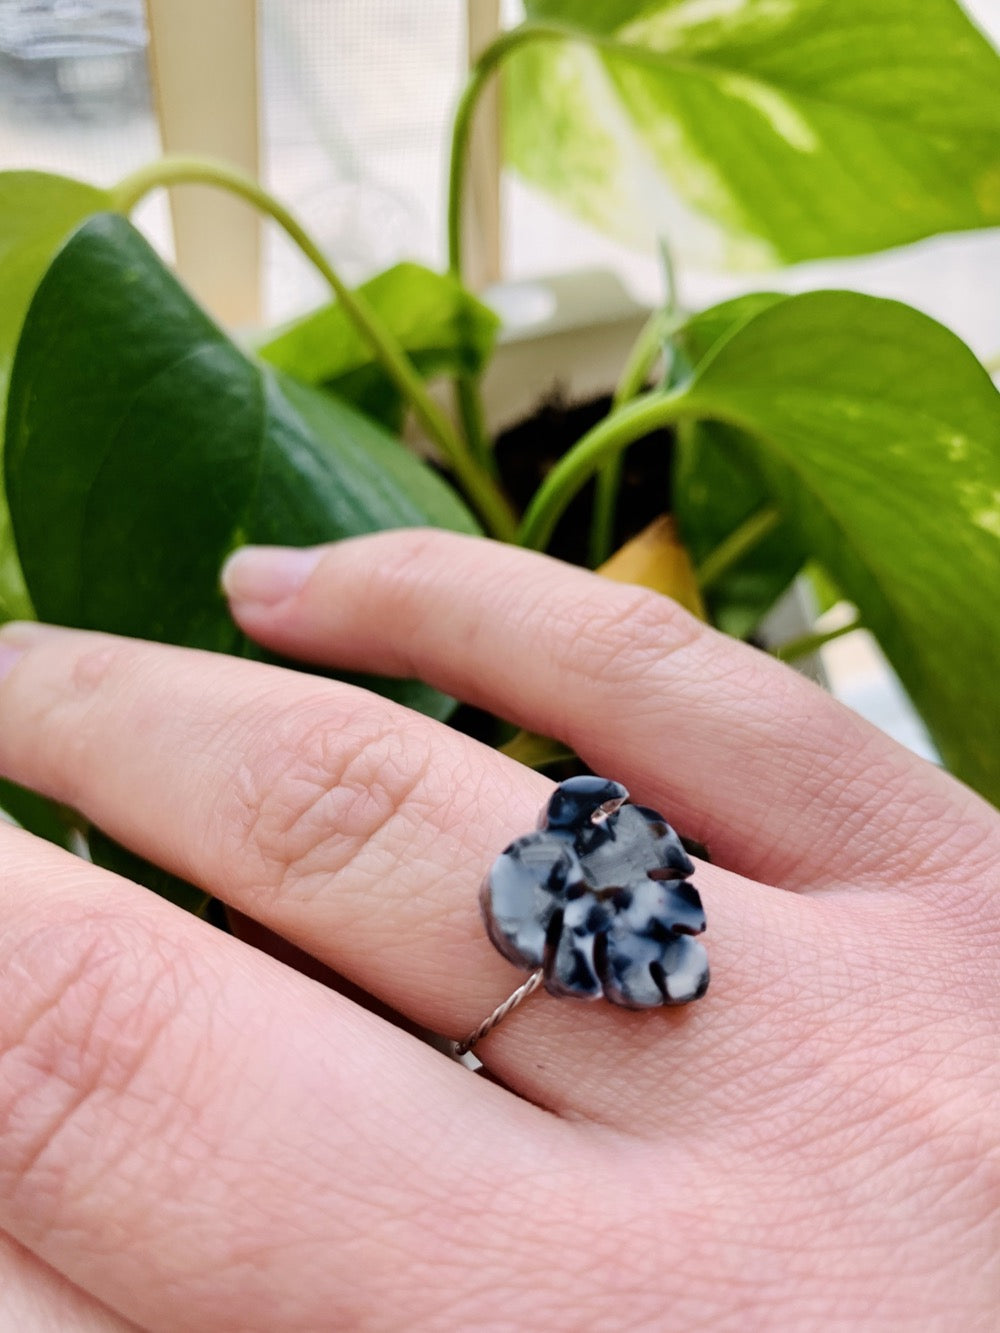 In the foreground is a hand with a ring cast from recycled plant based 3D prints. It is a ring in the shape of a monstera leaf with black, white, and silver filaments being used to create a speckled look like granite. In the background are bright green leaves.